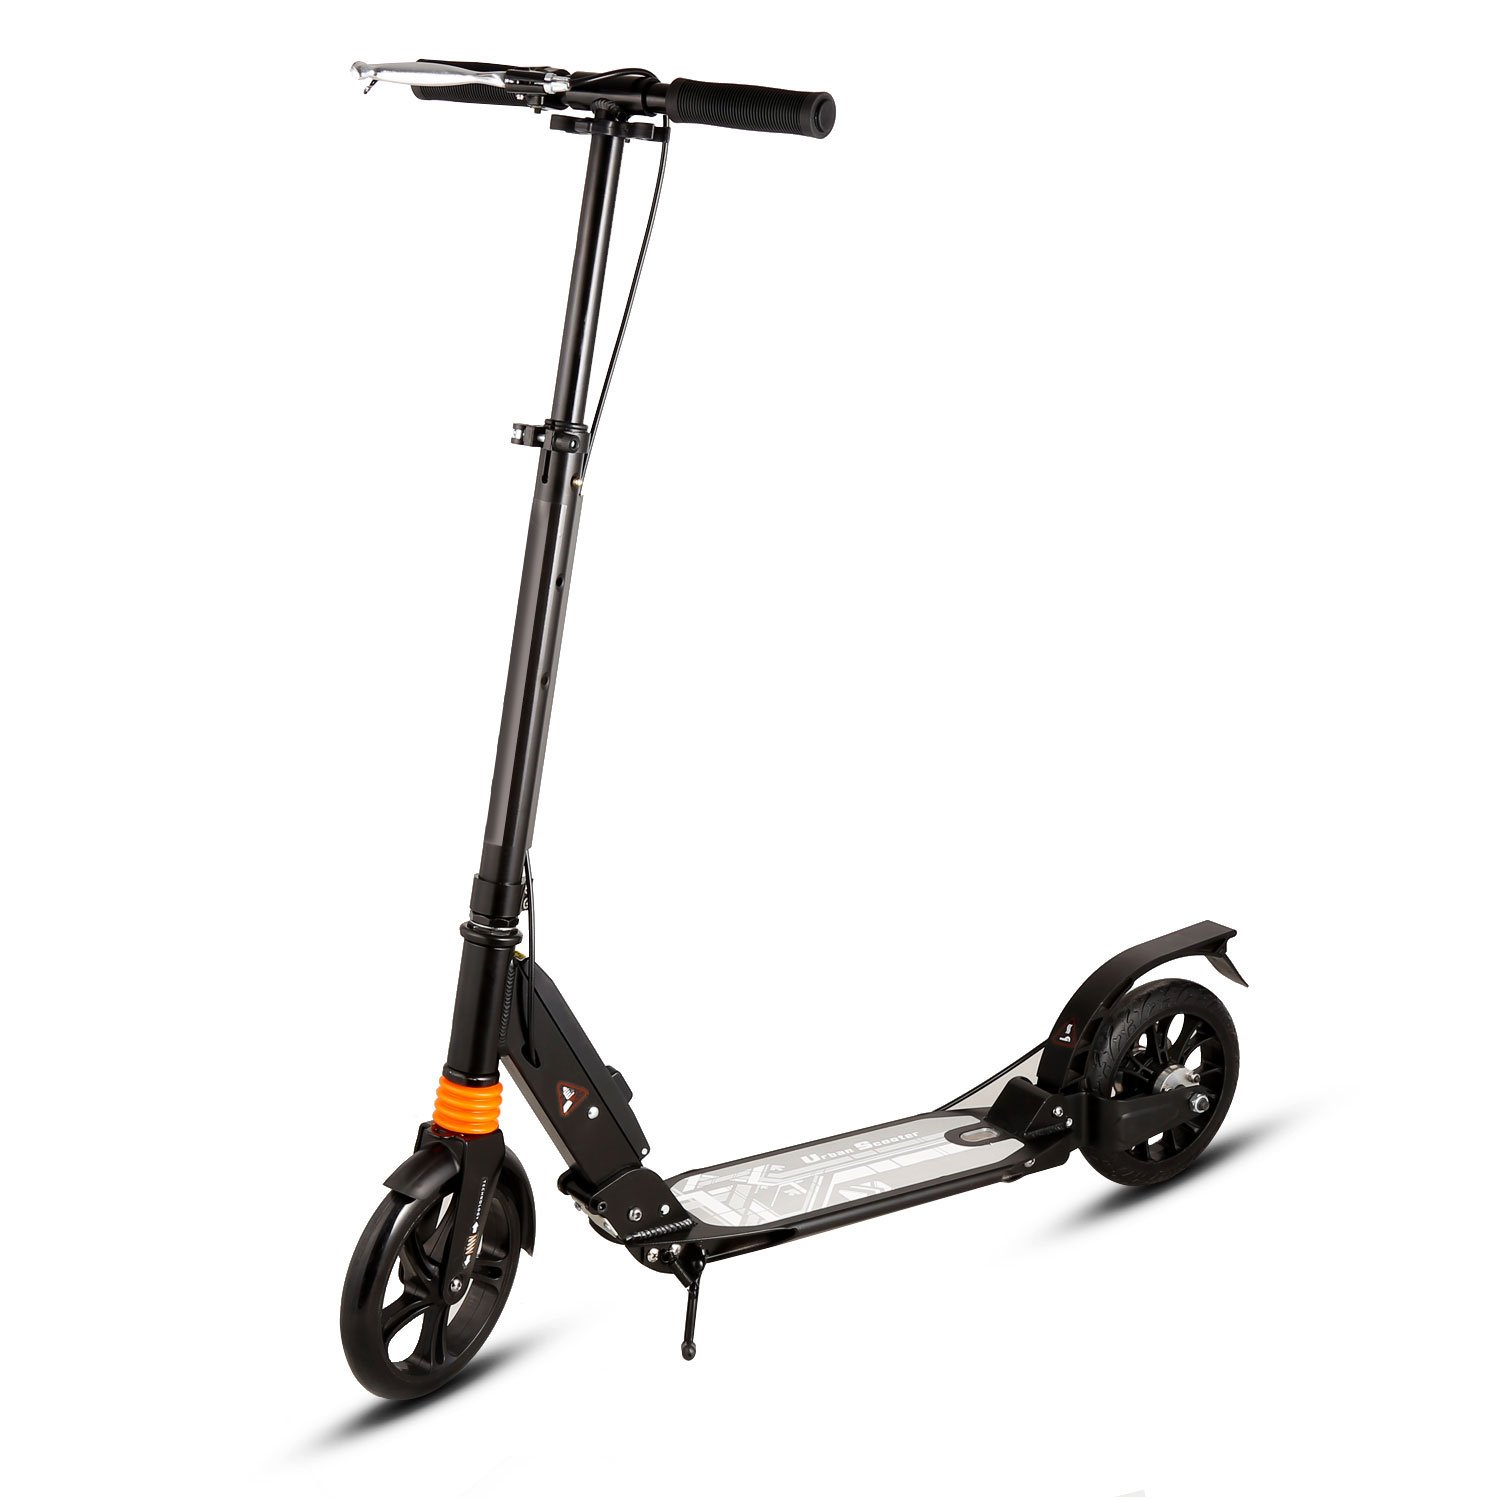 WeSkate A4 Adult Scooter Dual Suspension, Single Button Folding System, Adjustable Height Handle Bar, Lightweight kick scooter with Front and Disc brakes and 200mm big Wheels, 220 lbs Weight Capacity